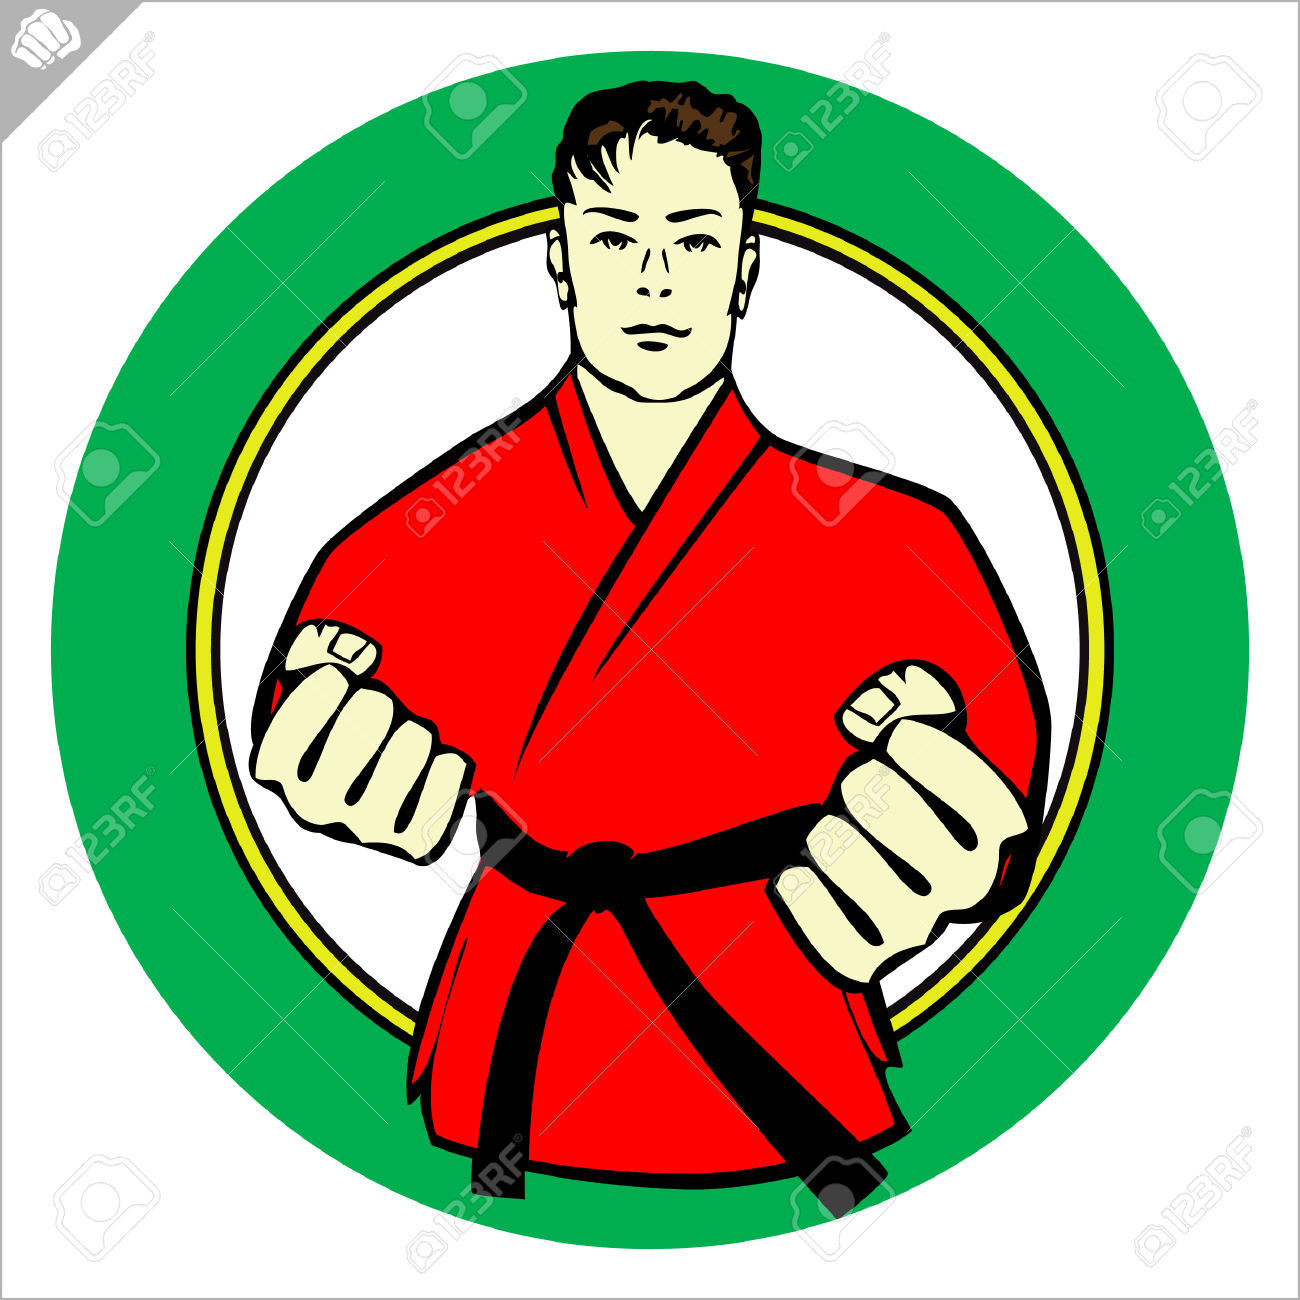 Martial Arts clipart fist punching Japan Martial Fist arts collection